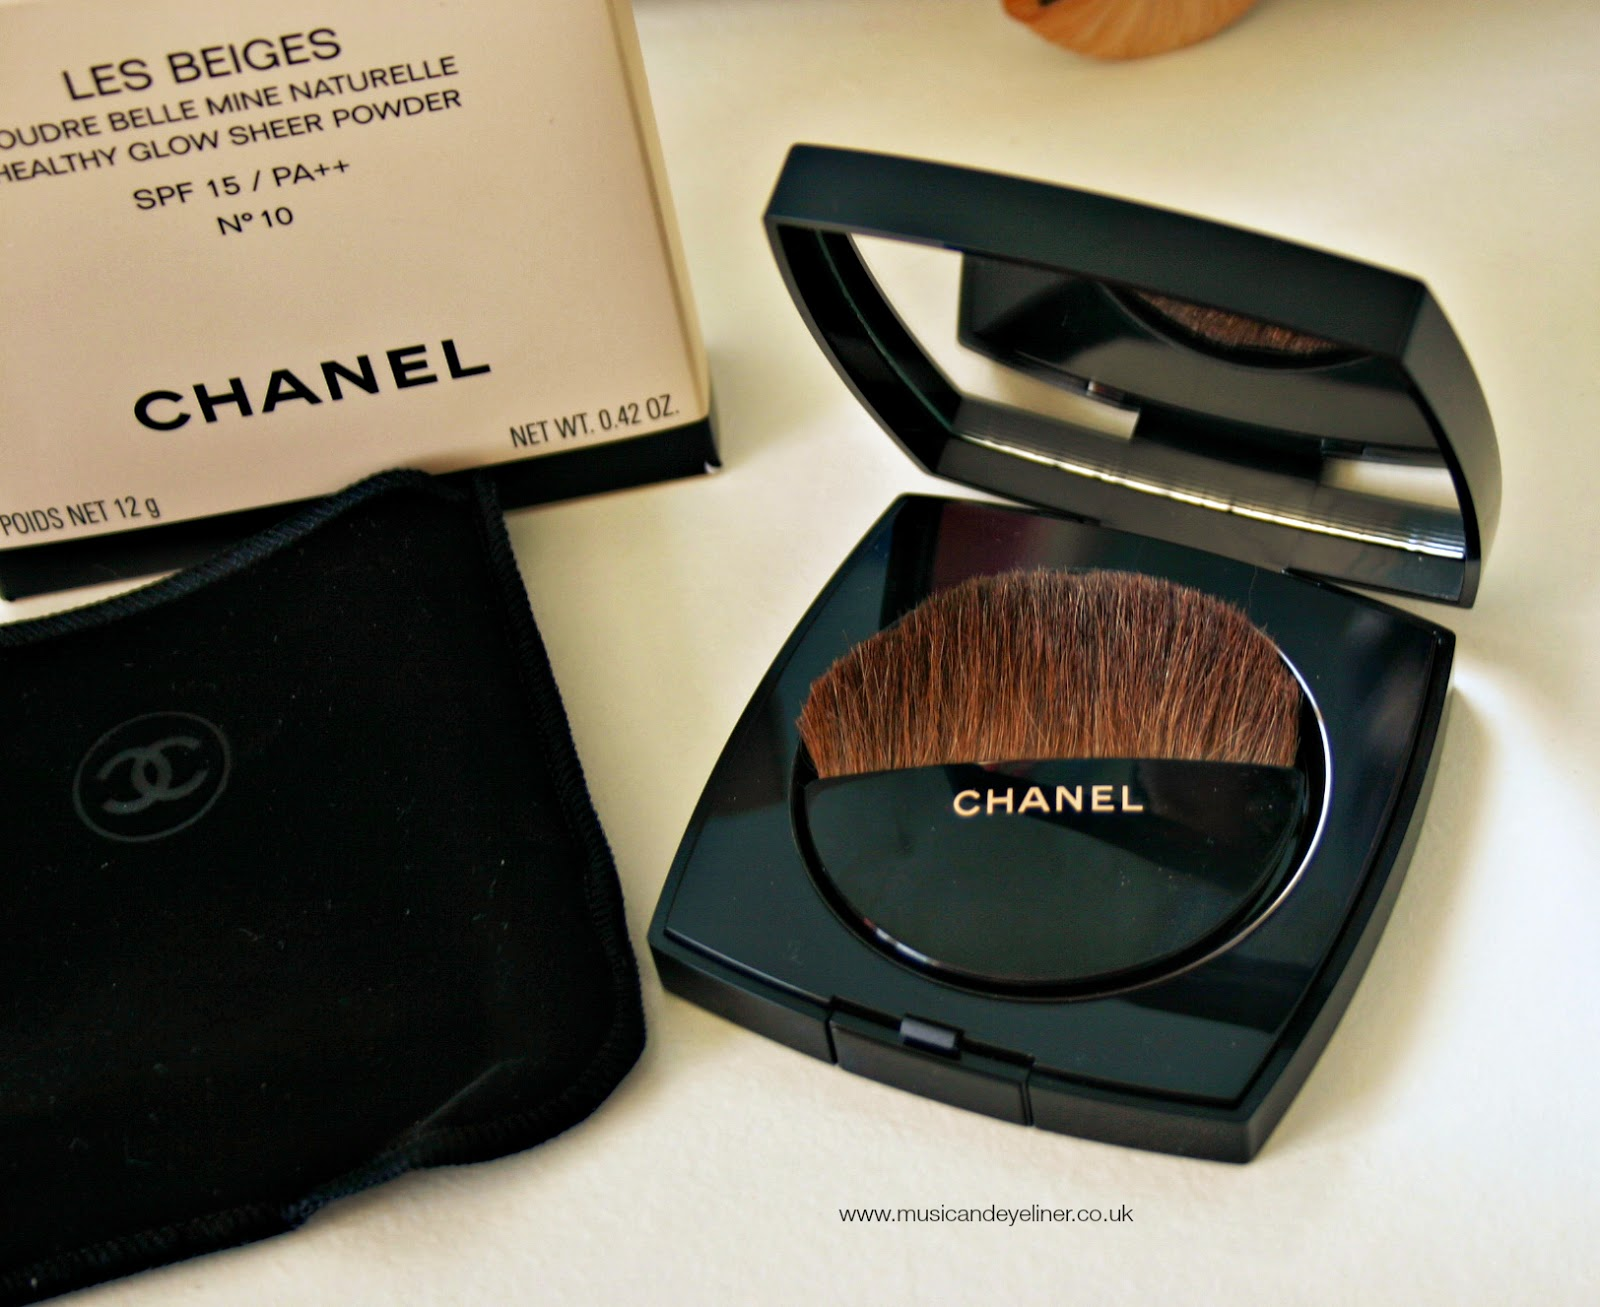 Photo of the chanel les beiges belle mine healthy glow powder on www.musicandeyeliner.co.uk